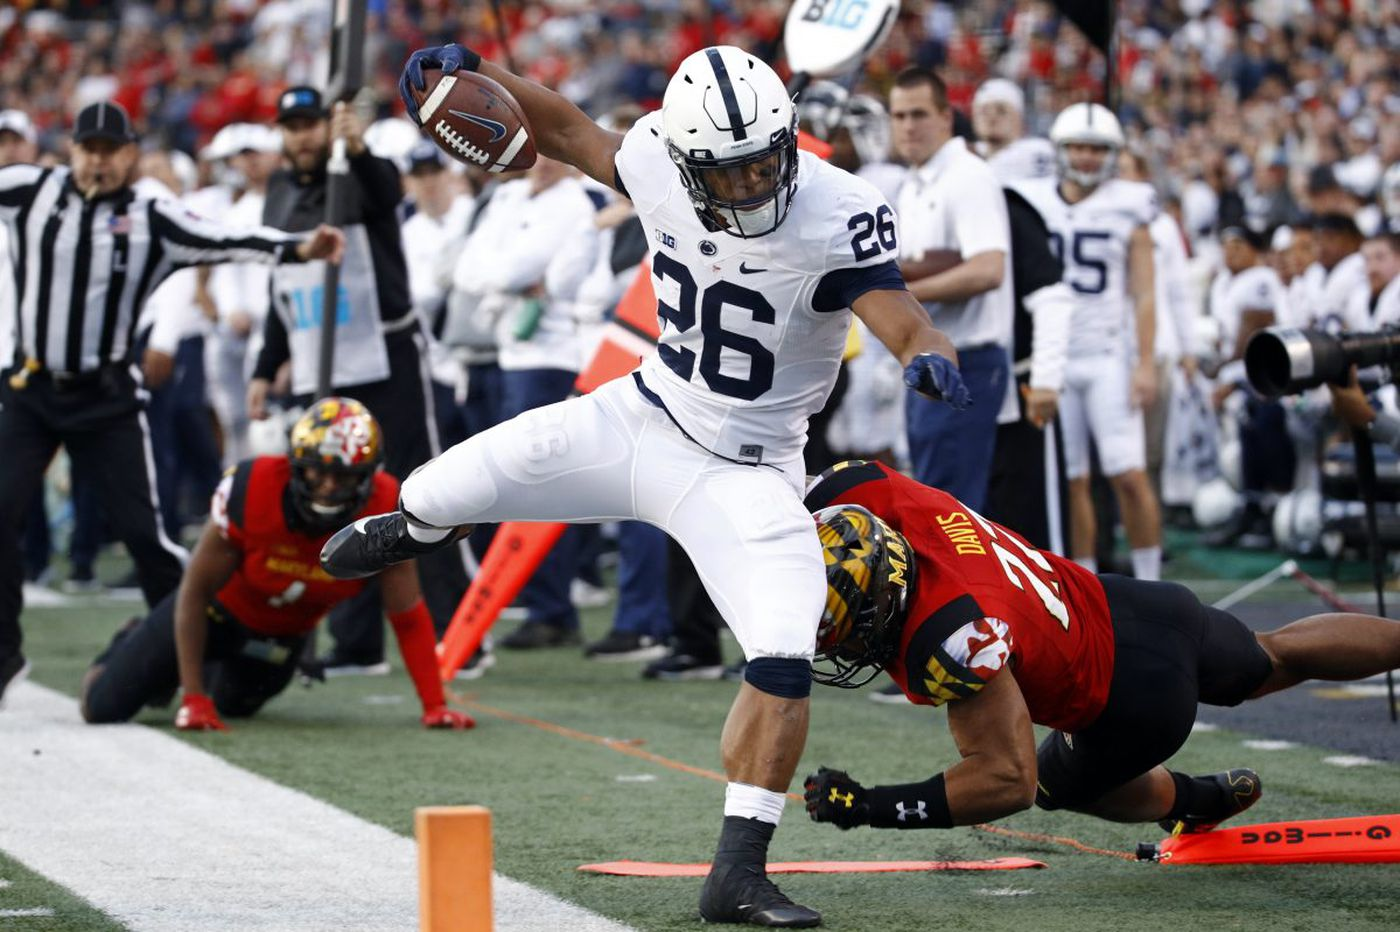 Penn State uses quick start to rout Maryland